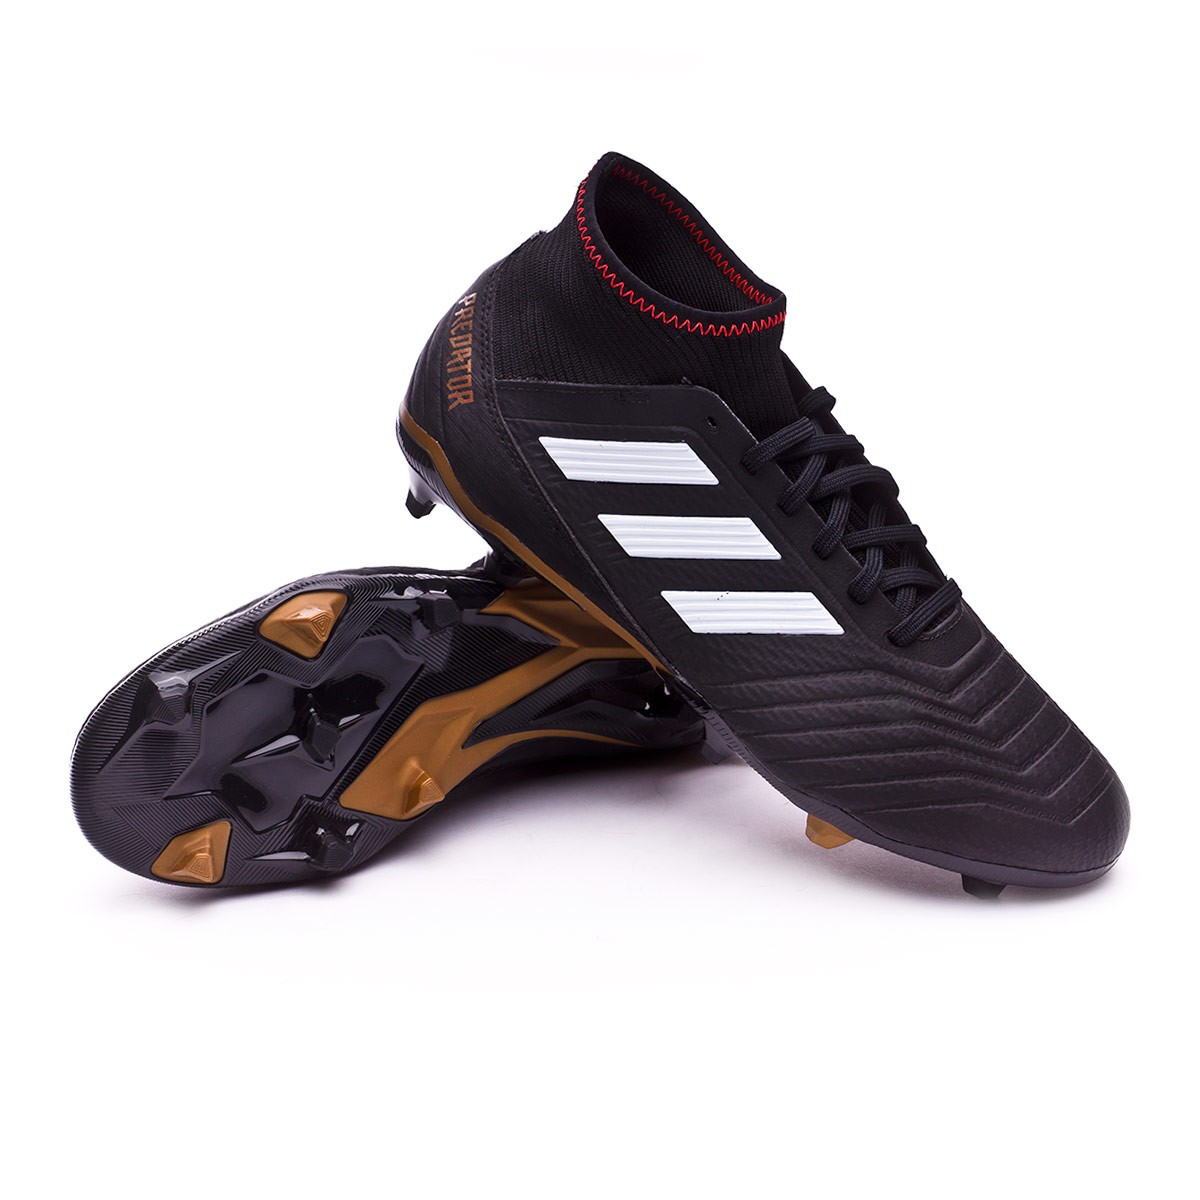 cheaper 27763 ce809 adidas Predator 18.3 FG Football Boots